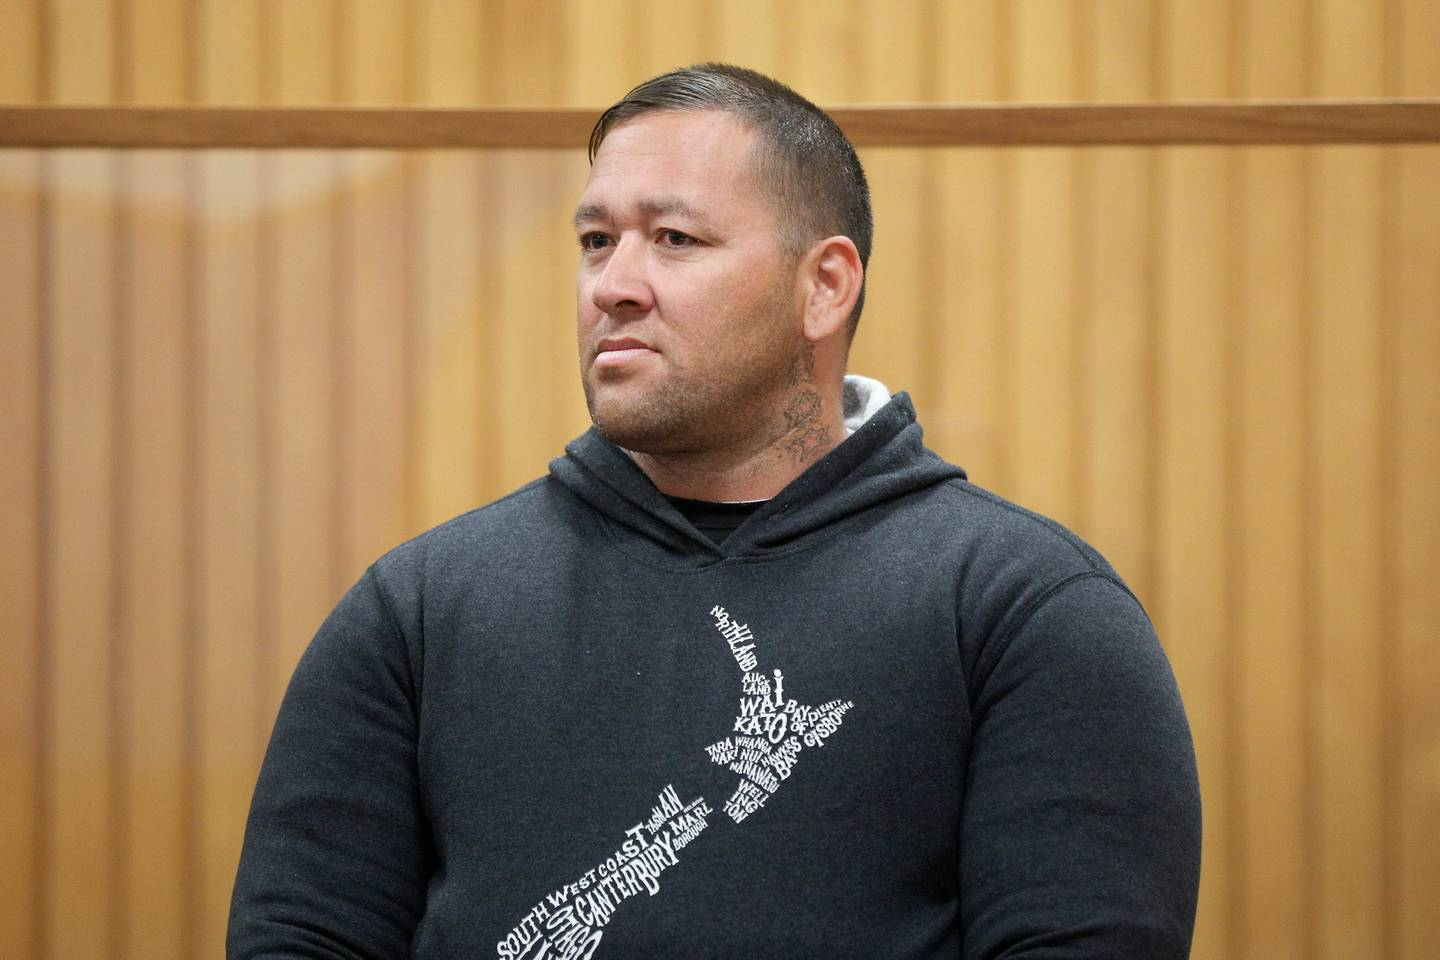 Aaron Izett pleaded not guilty to murder, but was convicted after a High Court jury trial in Rotorua in November, 2020. Photo / Andrew Warner